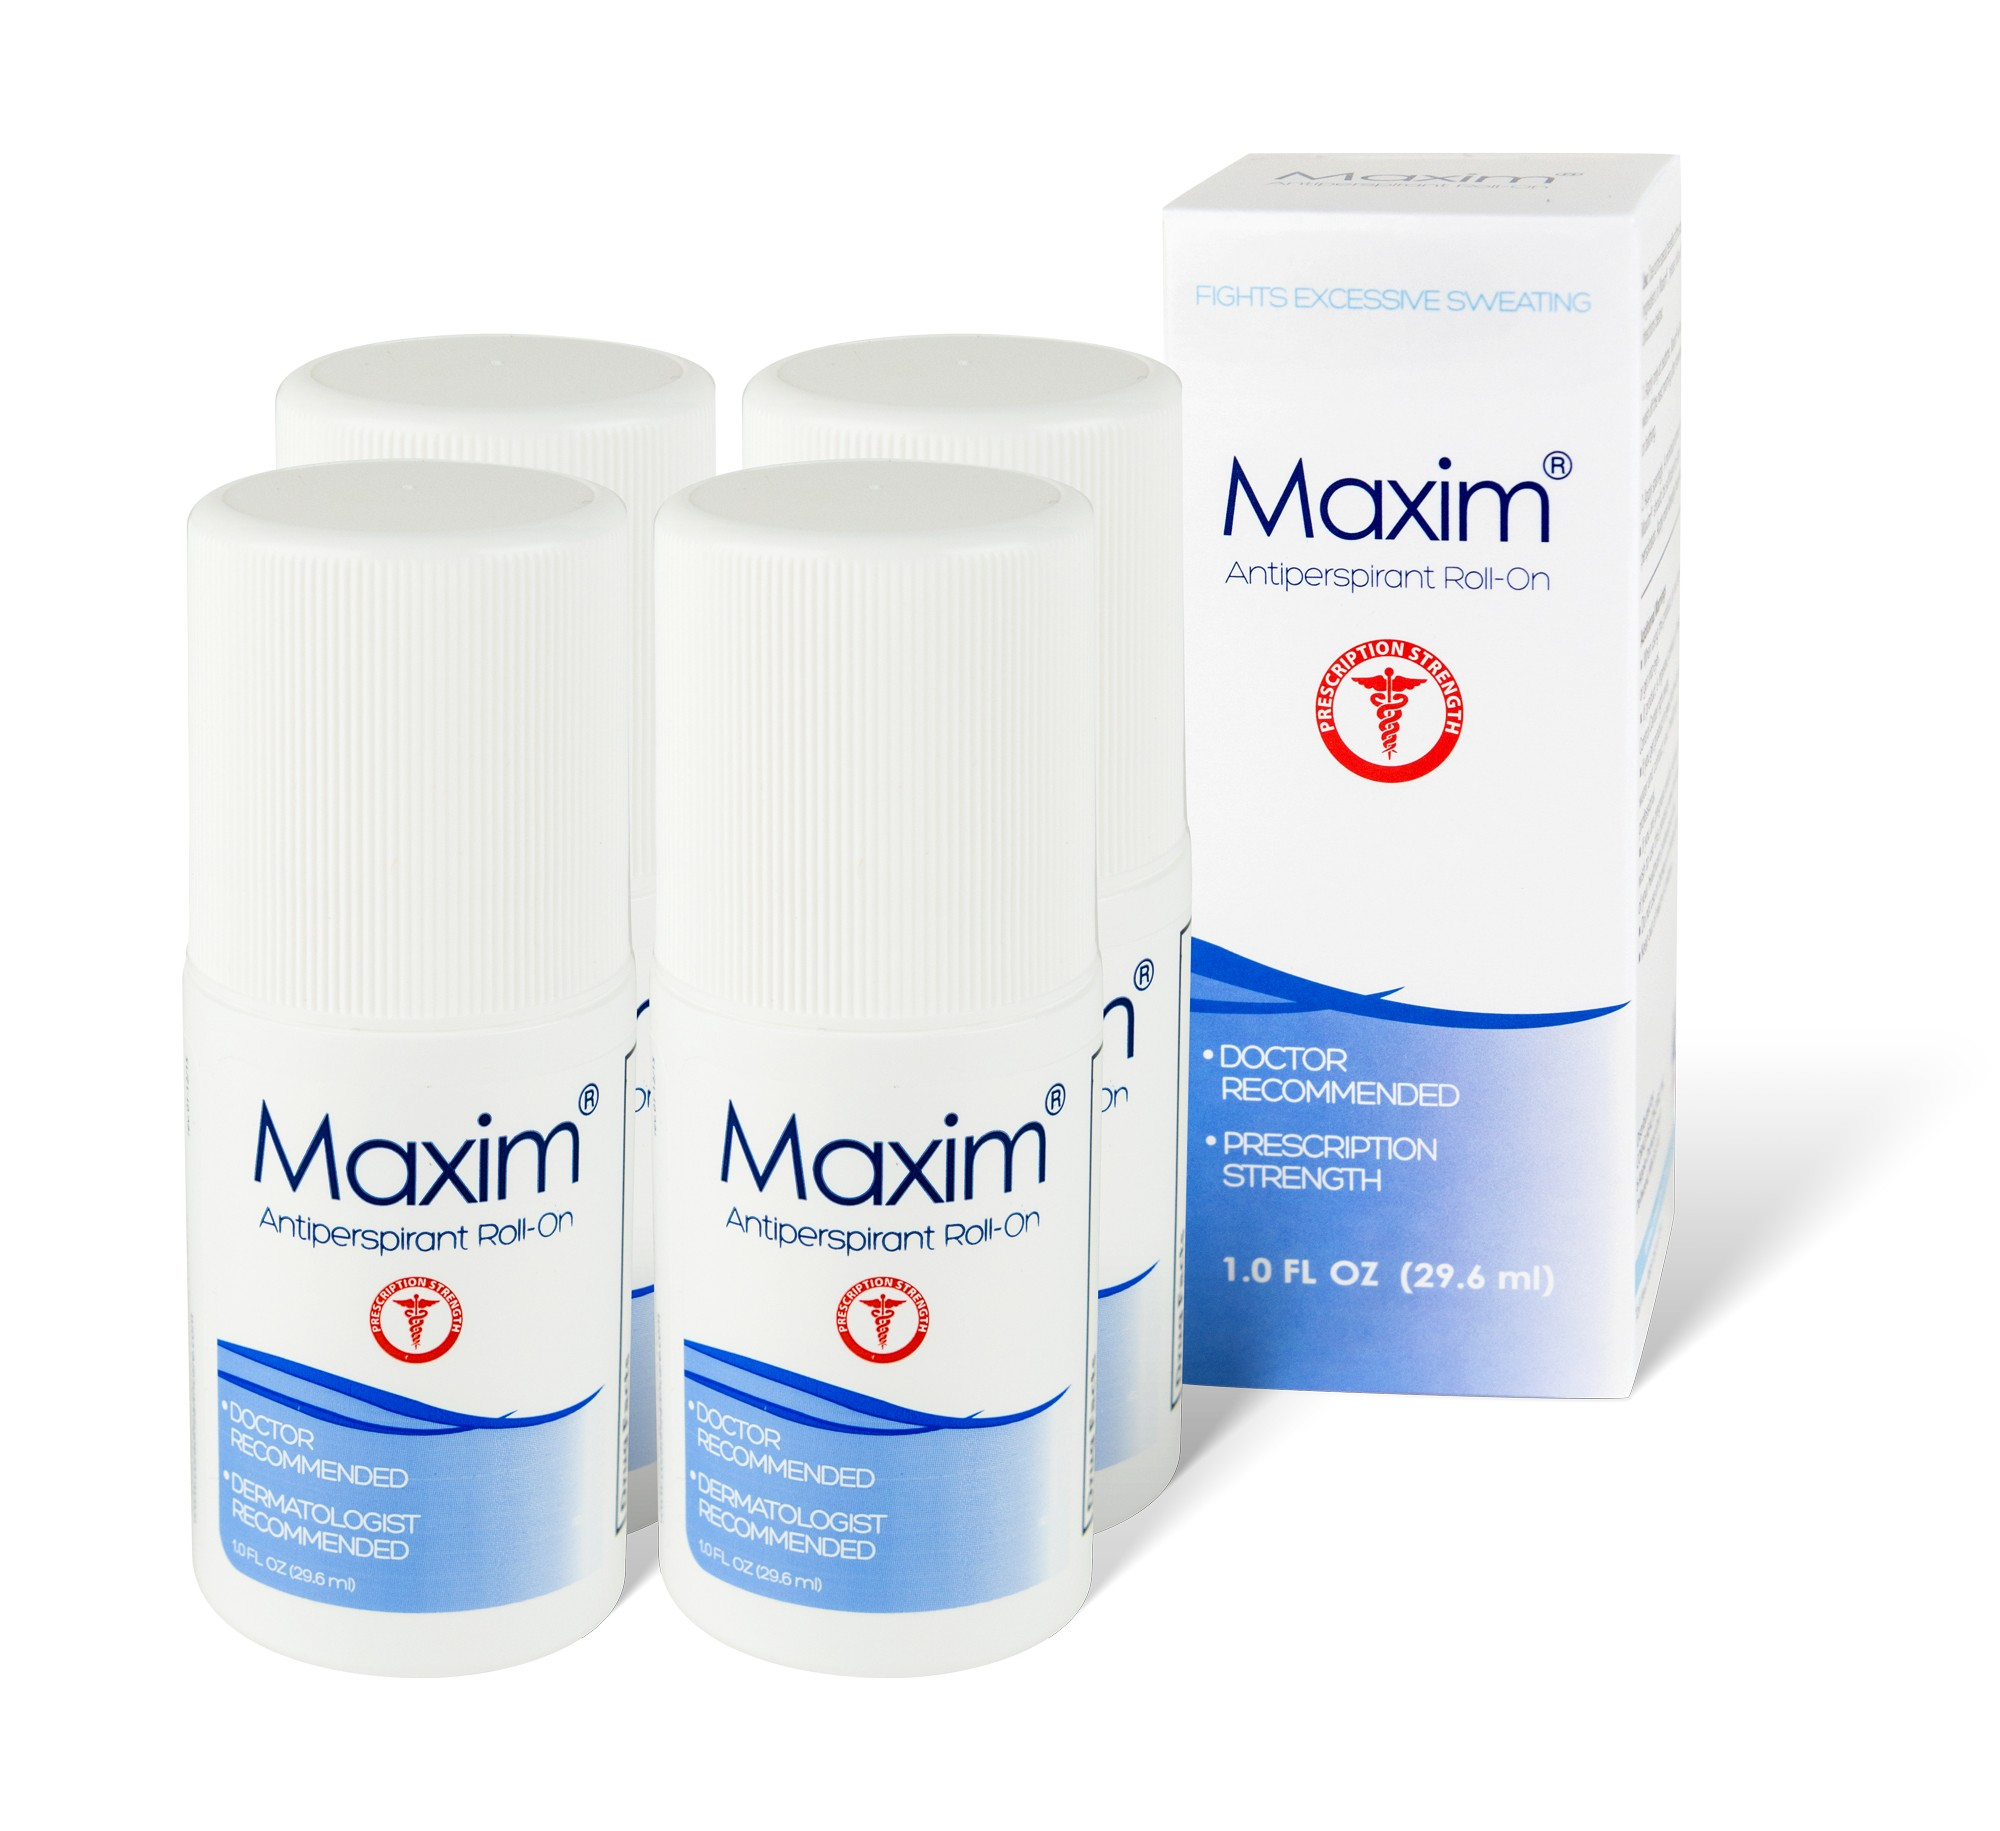 Maxim Antiperspirant 4-pack - Save 14.85